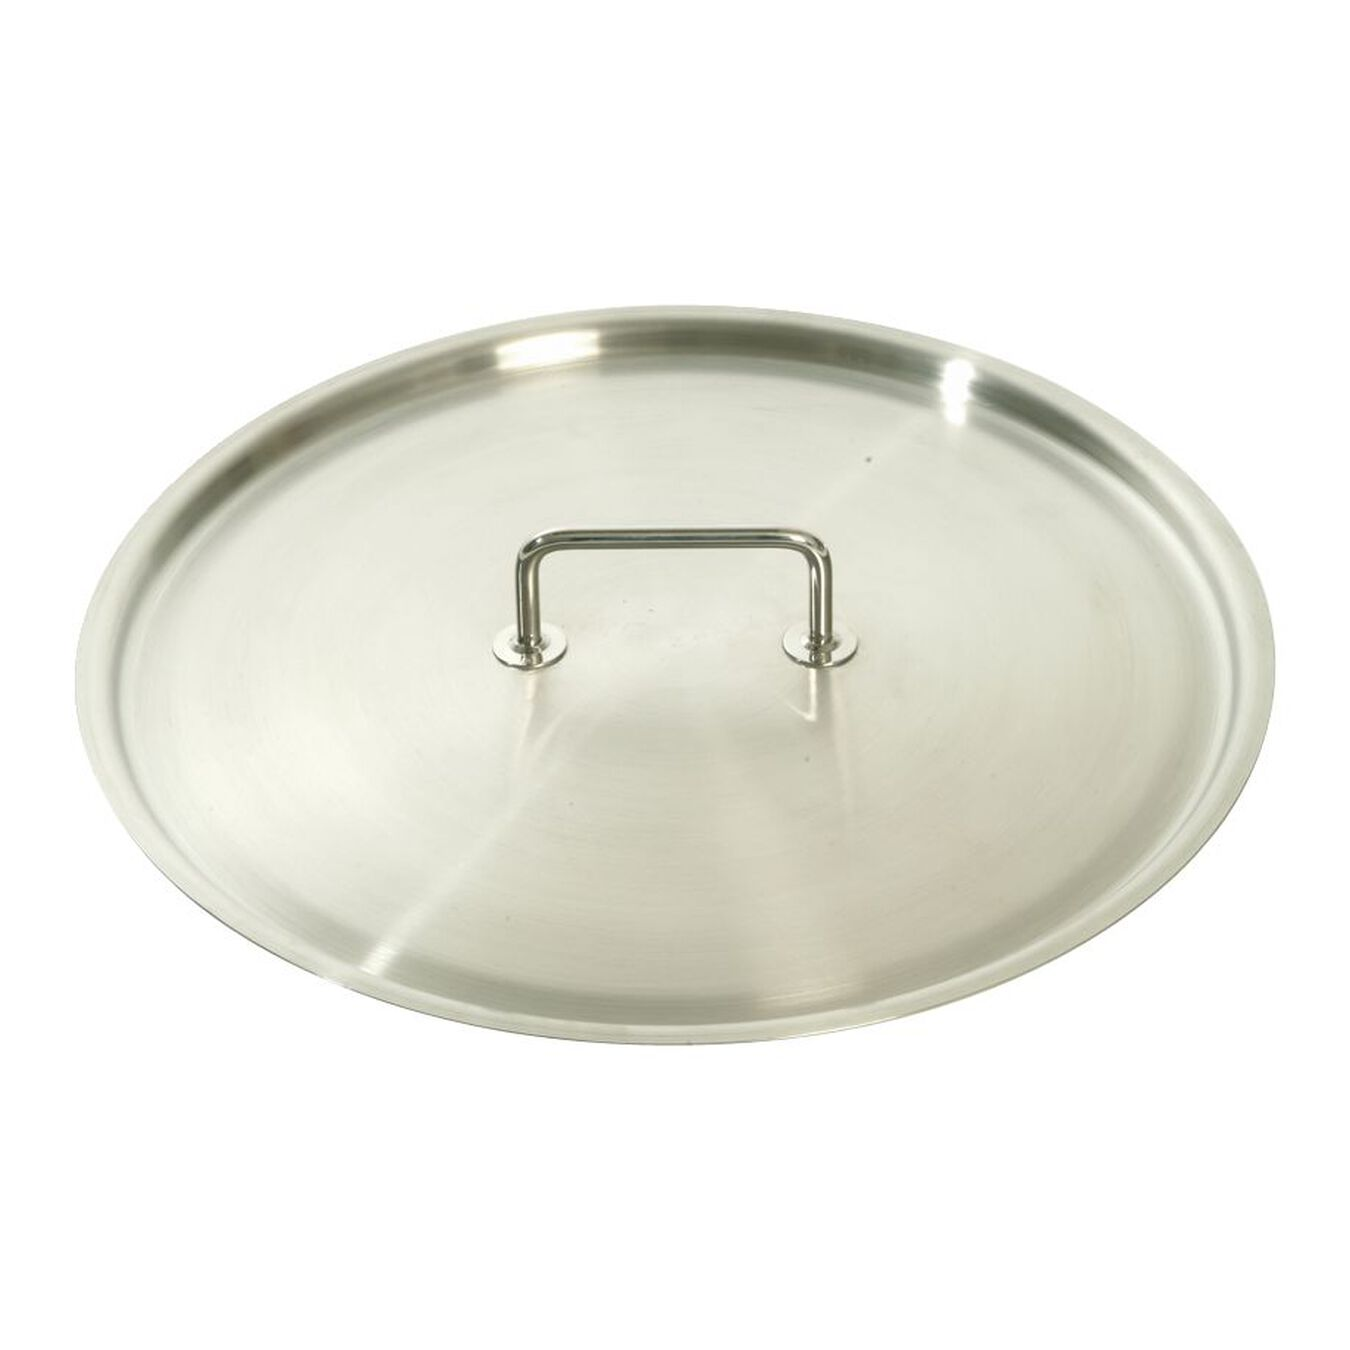 Couvercle for paella pan, Rond(e) | Inox 18/10,,large 1